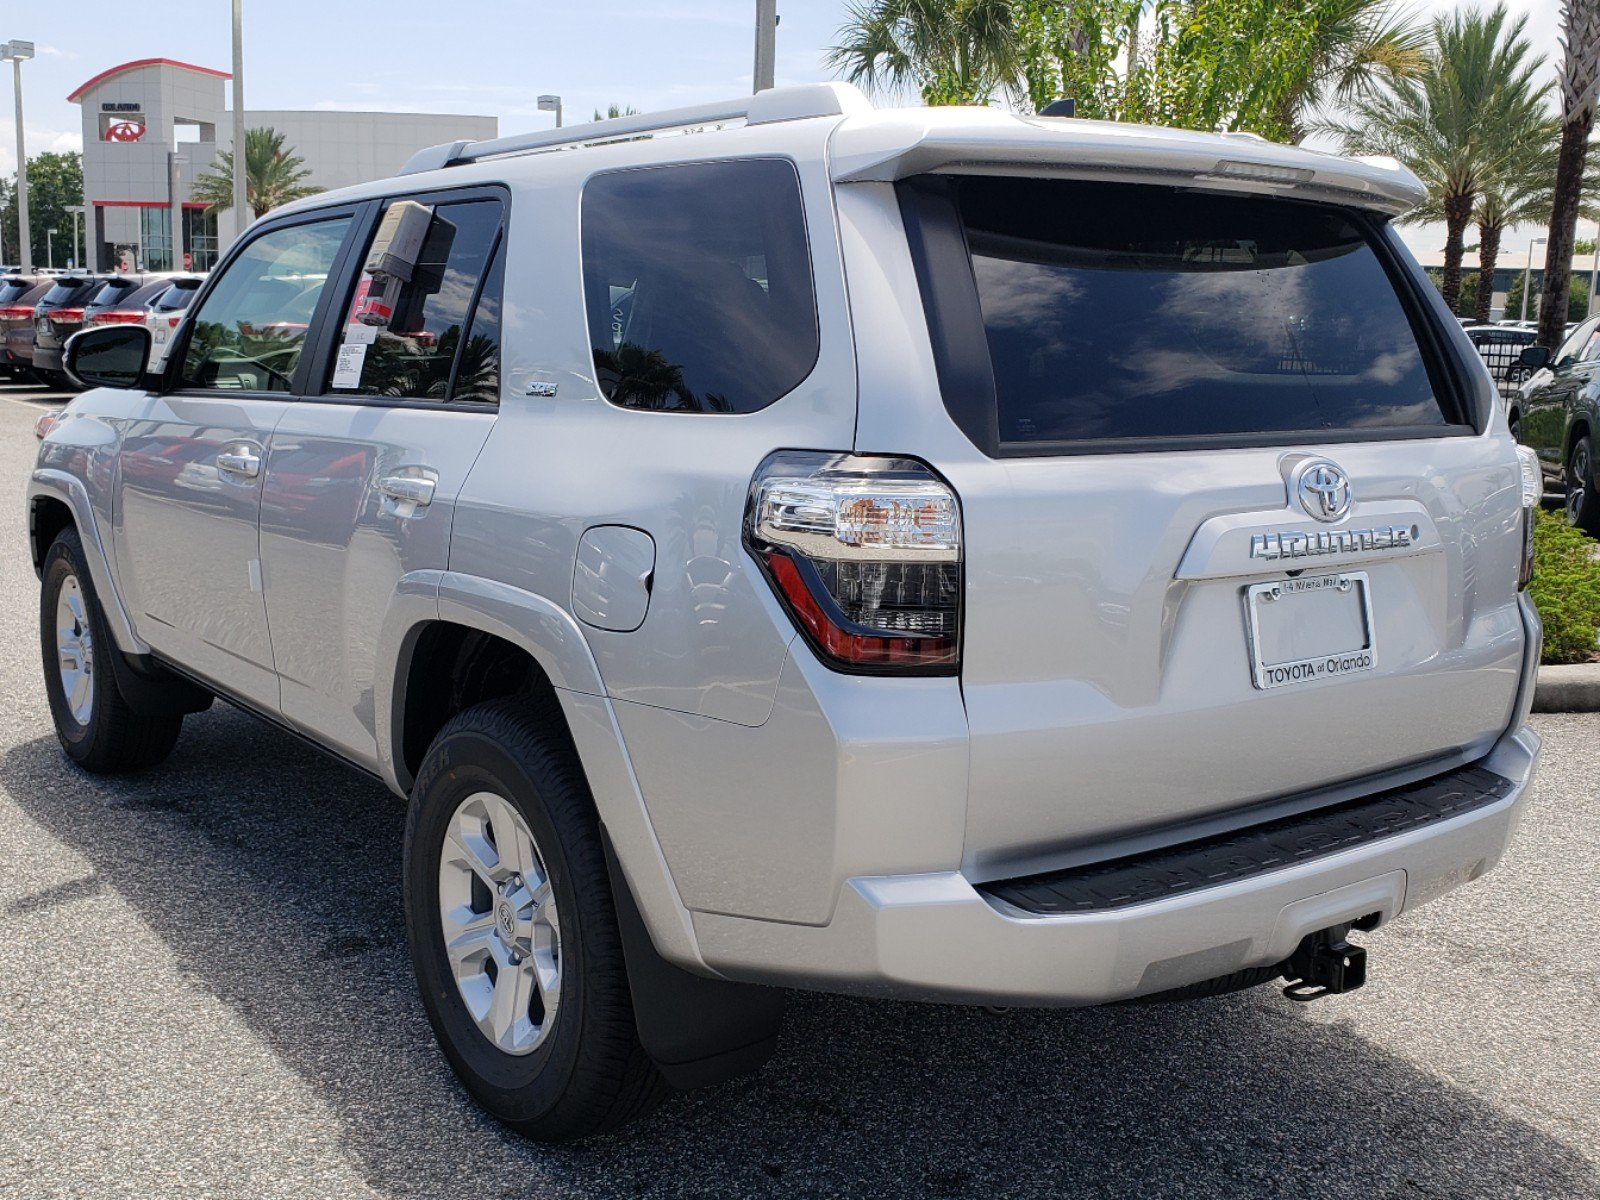 bd7c9939672e9c6db3989b265e3c1e90 Great Description About Used toyota 4runner for Sale